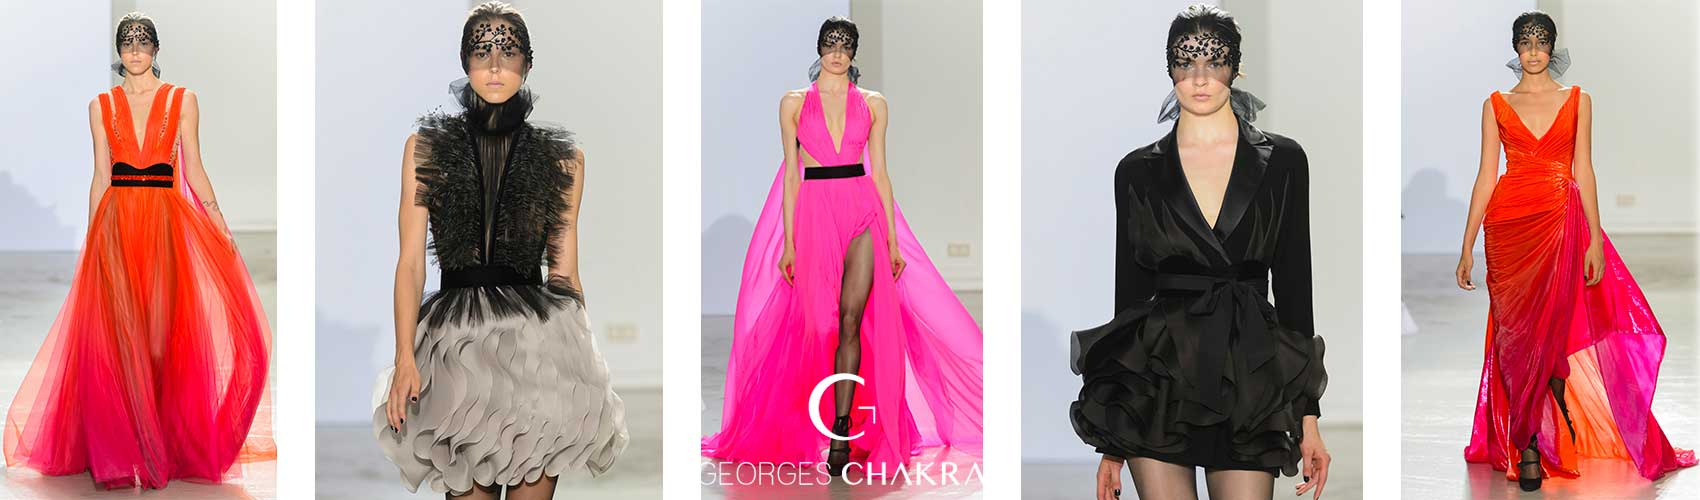 2 Georges Chakra FW 1819 2